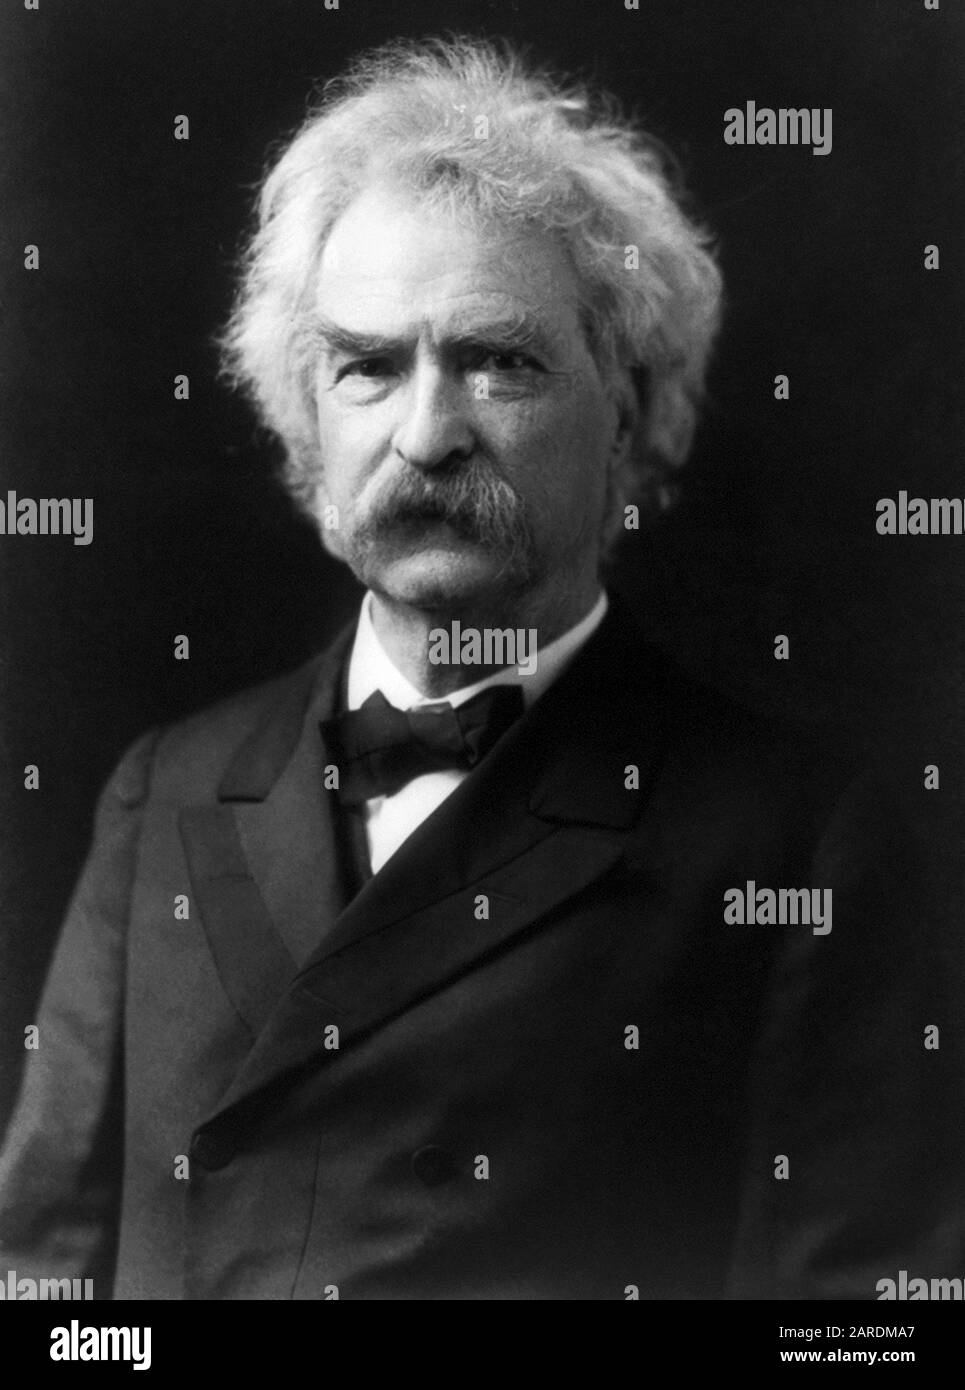 Vintage portrait photo of American writer and humourist Samuel Langhorne Clemens (1835 – 1910), better known by his pen name of Mark Twain. Photo circa 1905 by Theodore C Marceau. Stock Photo